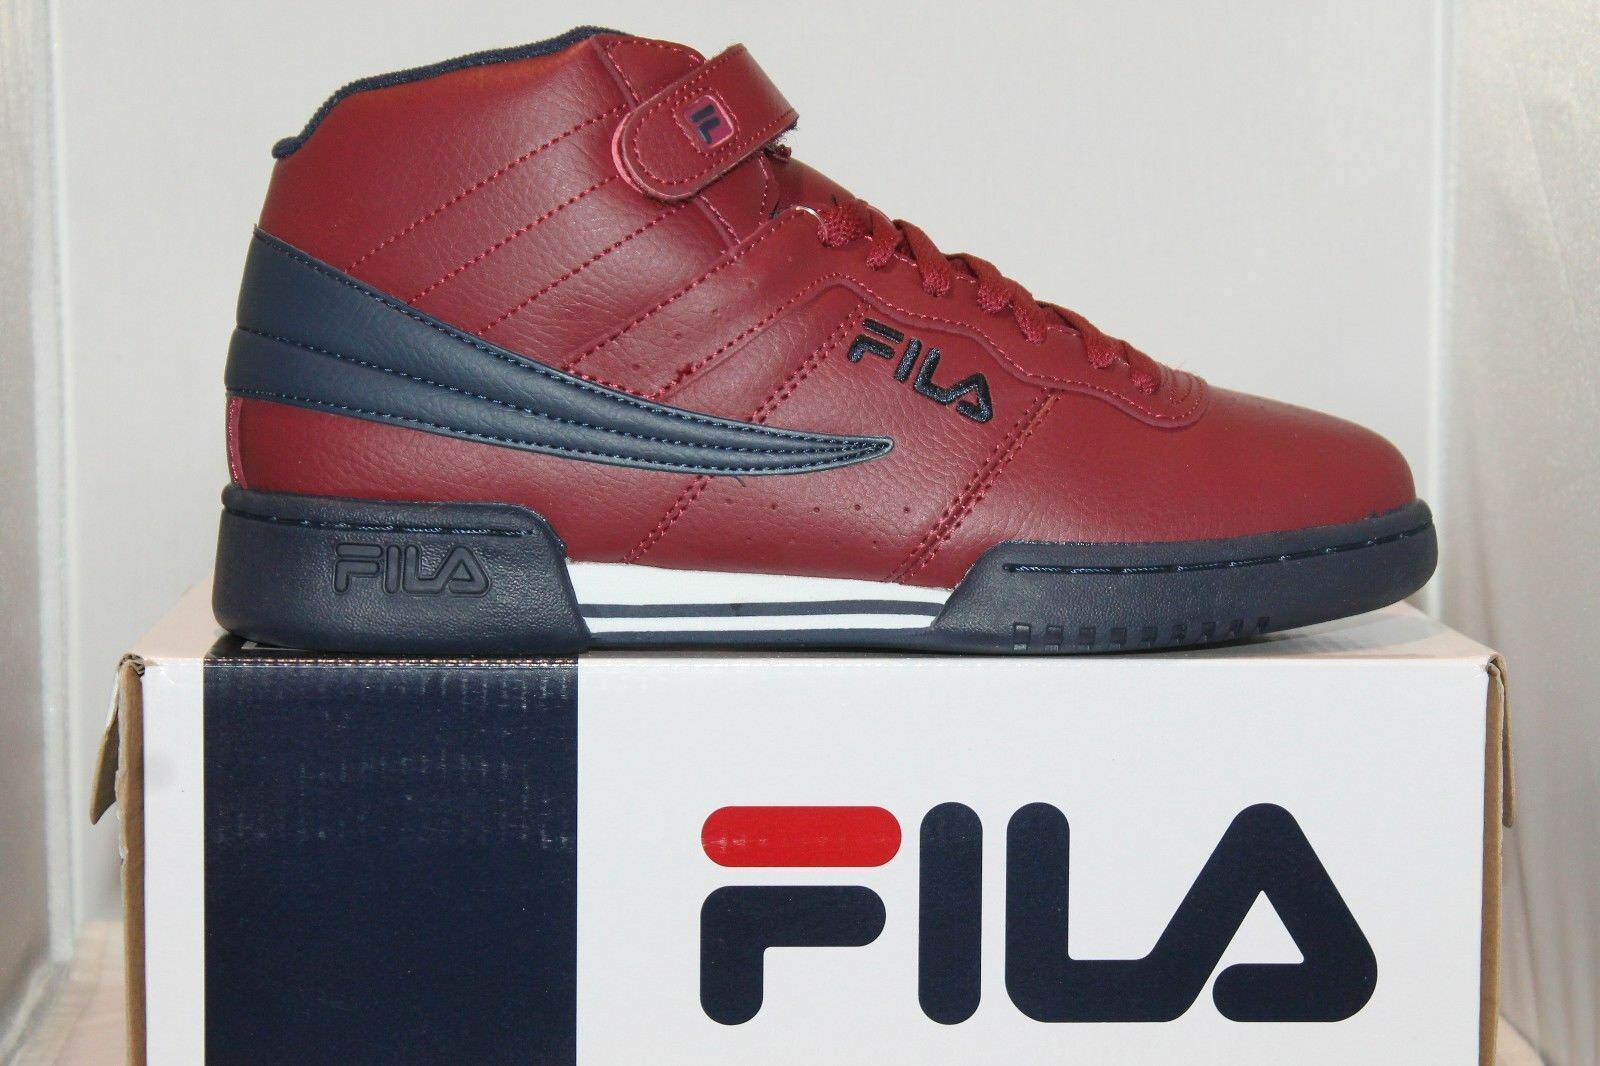 Uomo Fila F13 F-13 Classic Mid High Top Basketball Shoes  Burgundy Navy